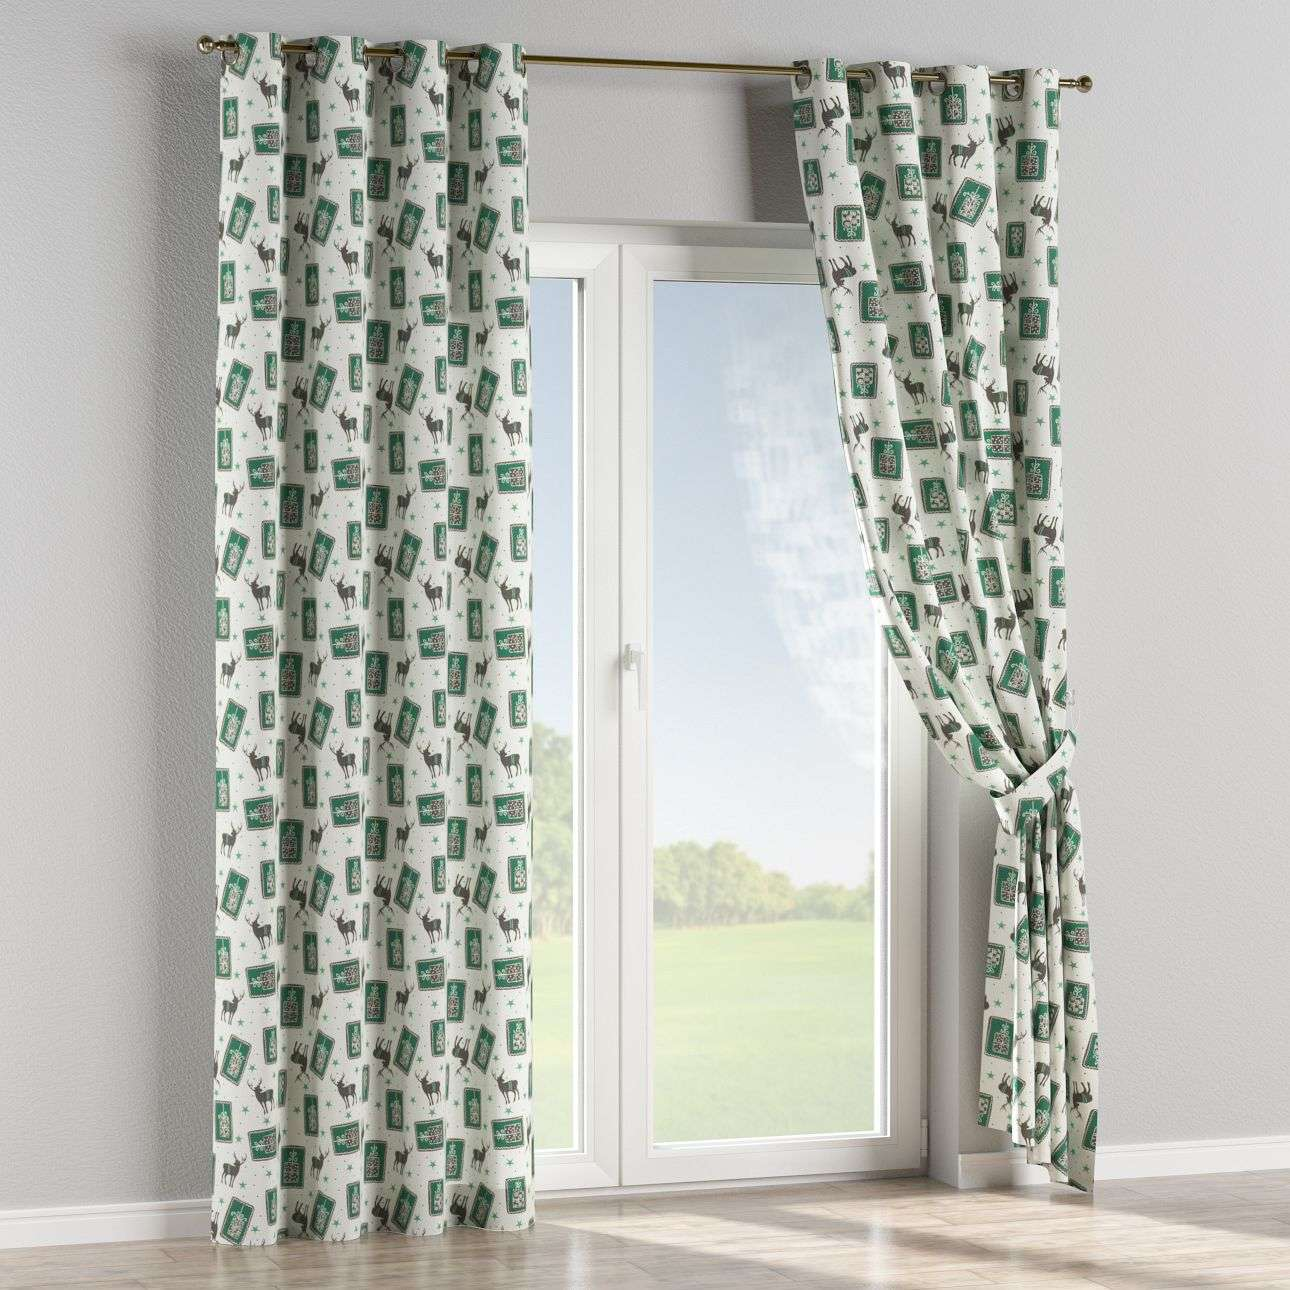 Eyelet curtains 130 x 260 cm (51 x 102 inch) in collection Christmas , fabric: 630-13